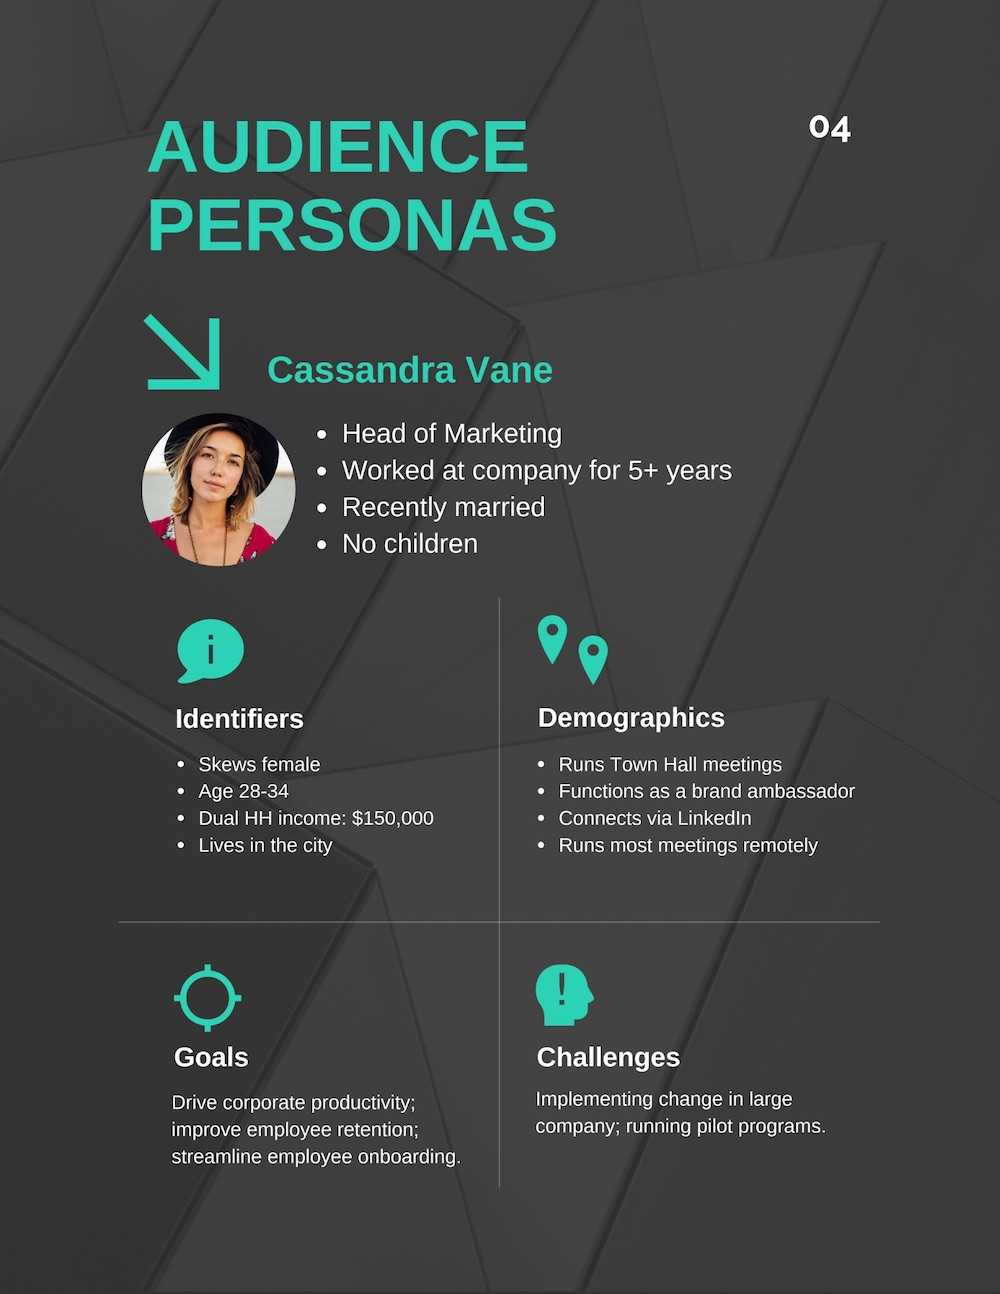 plano de marketing pronto persona